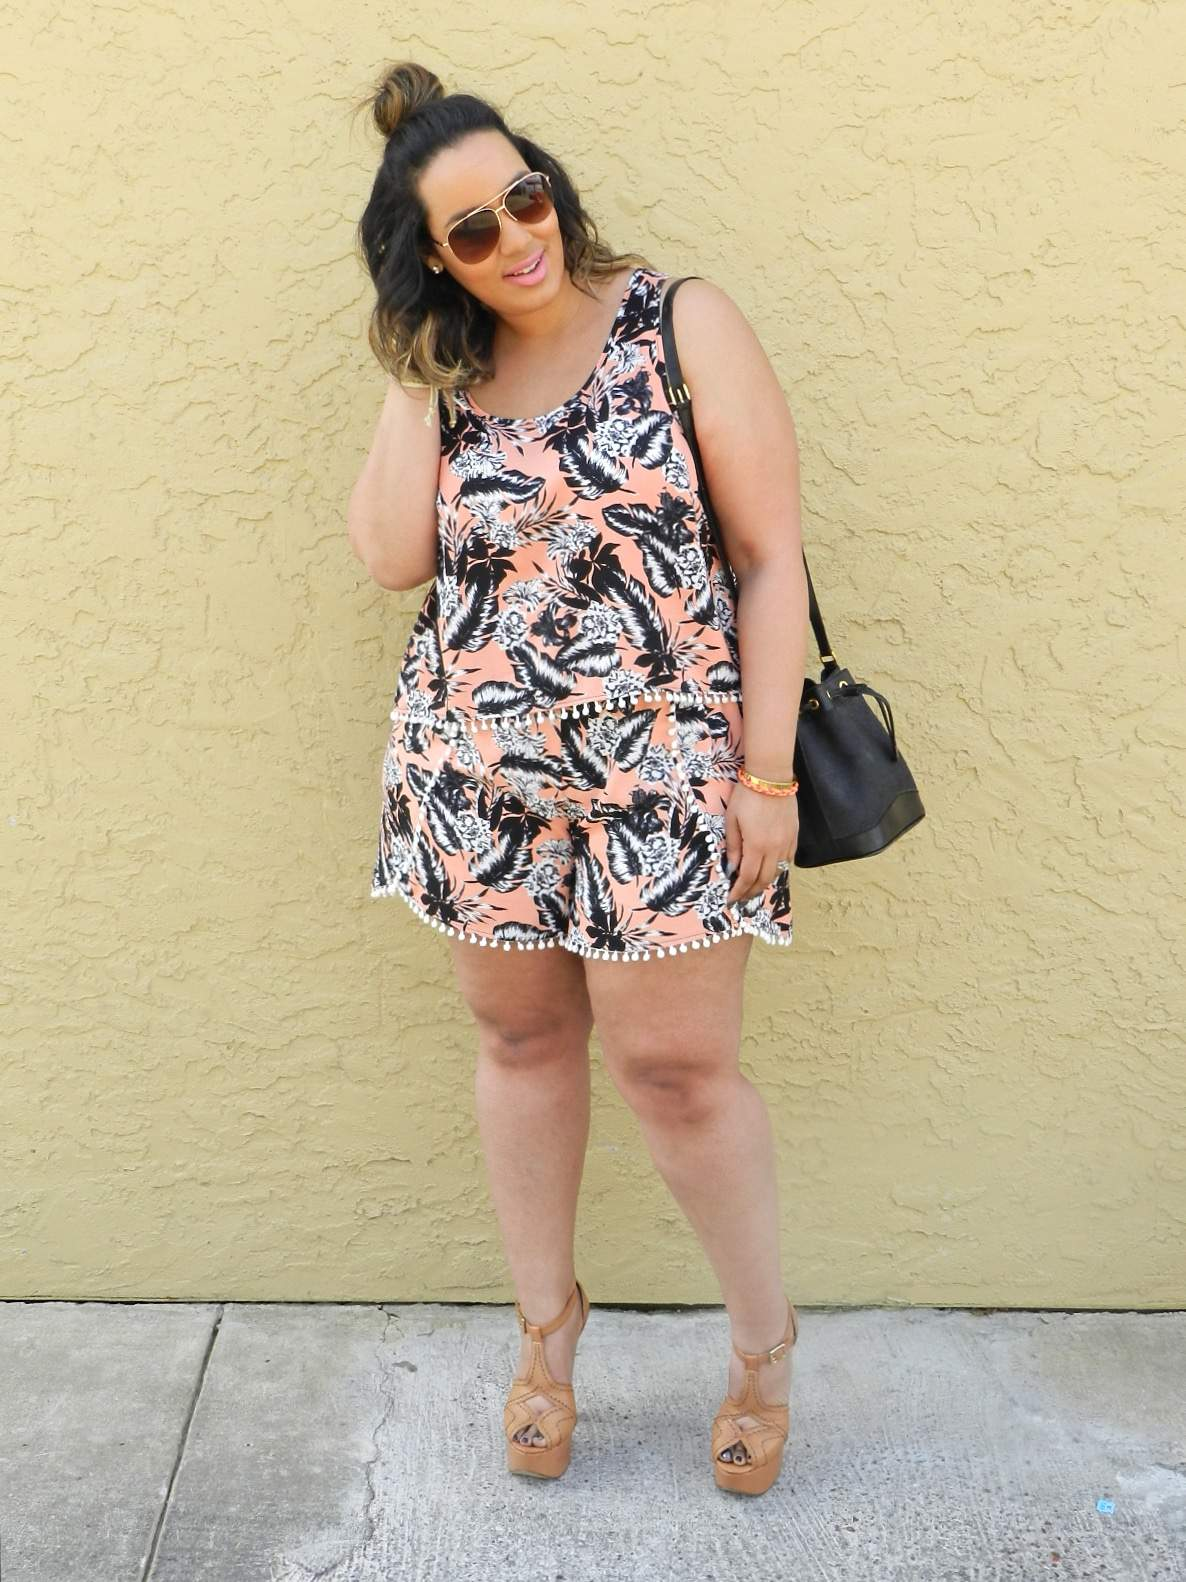 Rocehlle from Beauticurve on TheCurvyFashionista.com